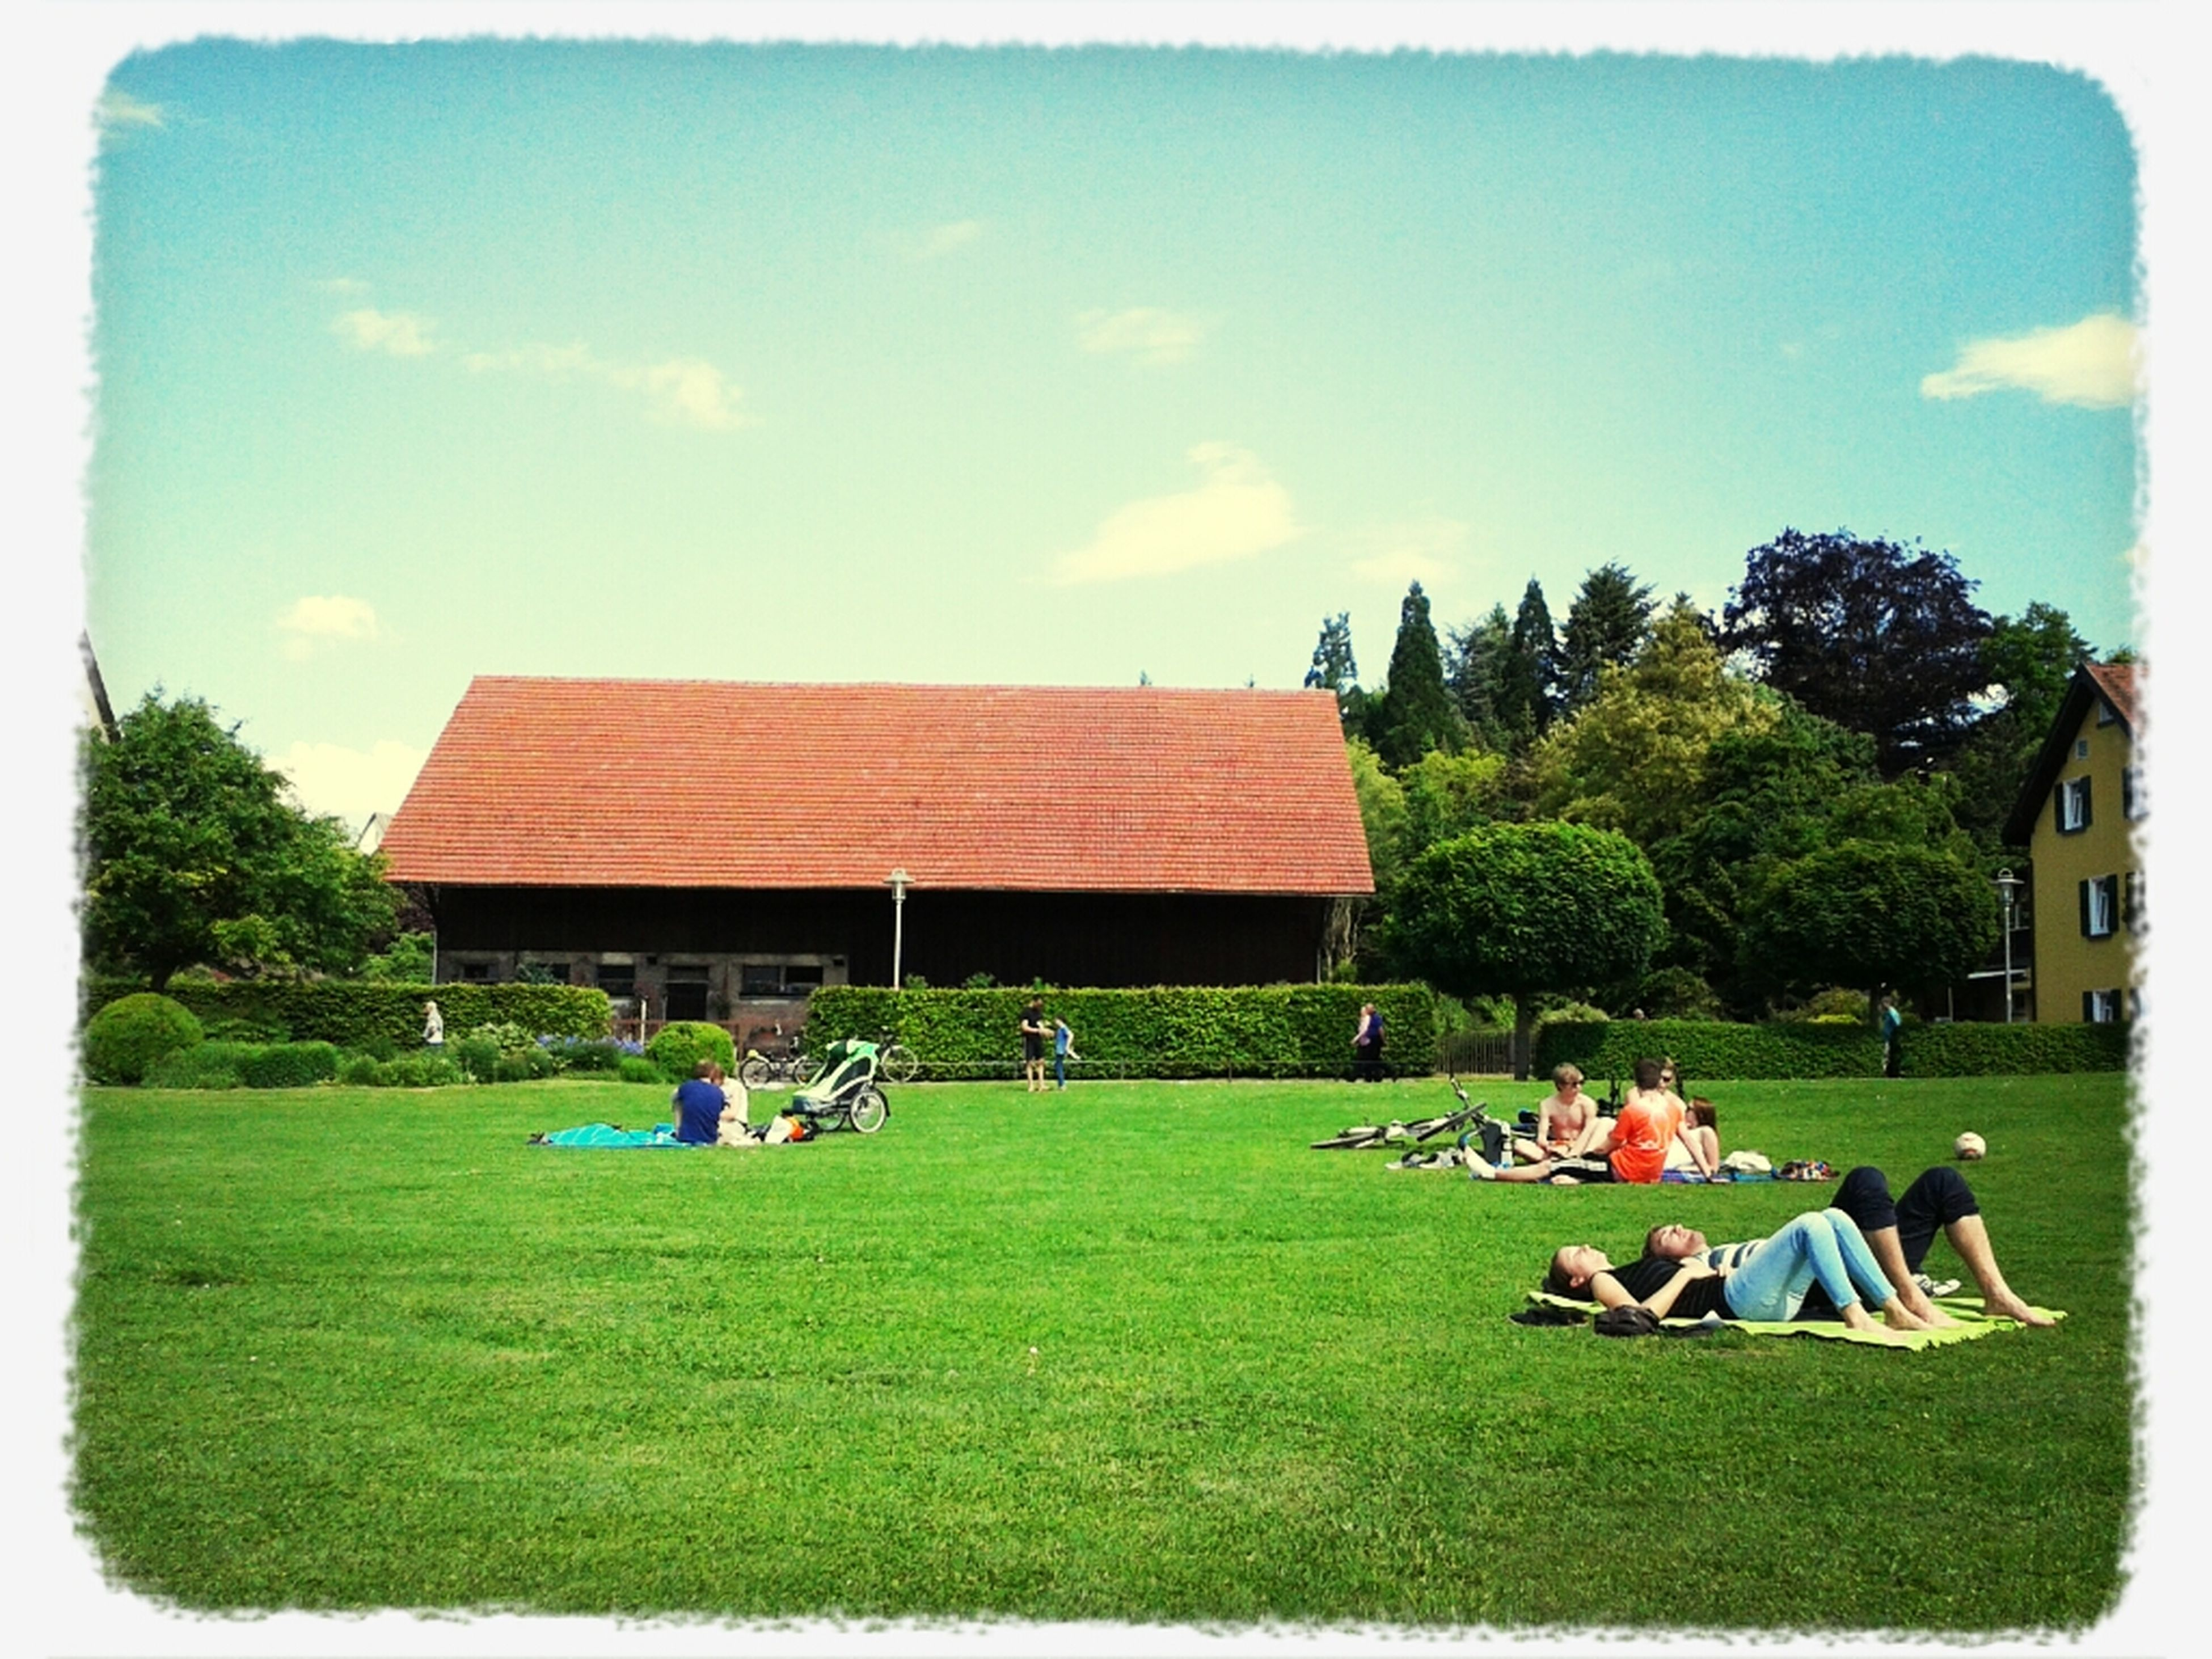 grass, tree, leisure activity, relaxation, sky, lifestyles, men, person, sitting, bench, large group of people, green color, field, park - man made space, lawn, building exterior, chair, built structure, transfer print